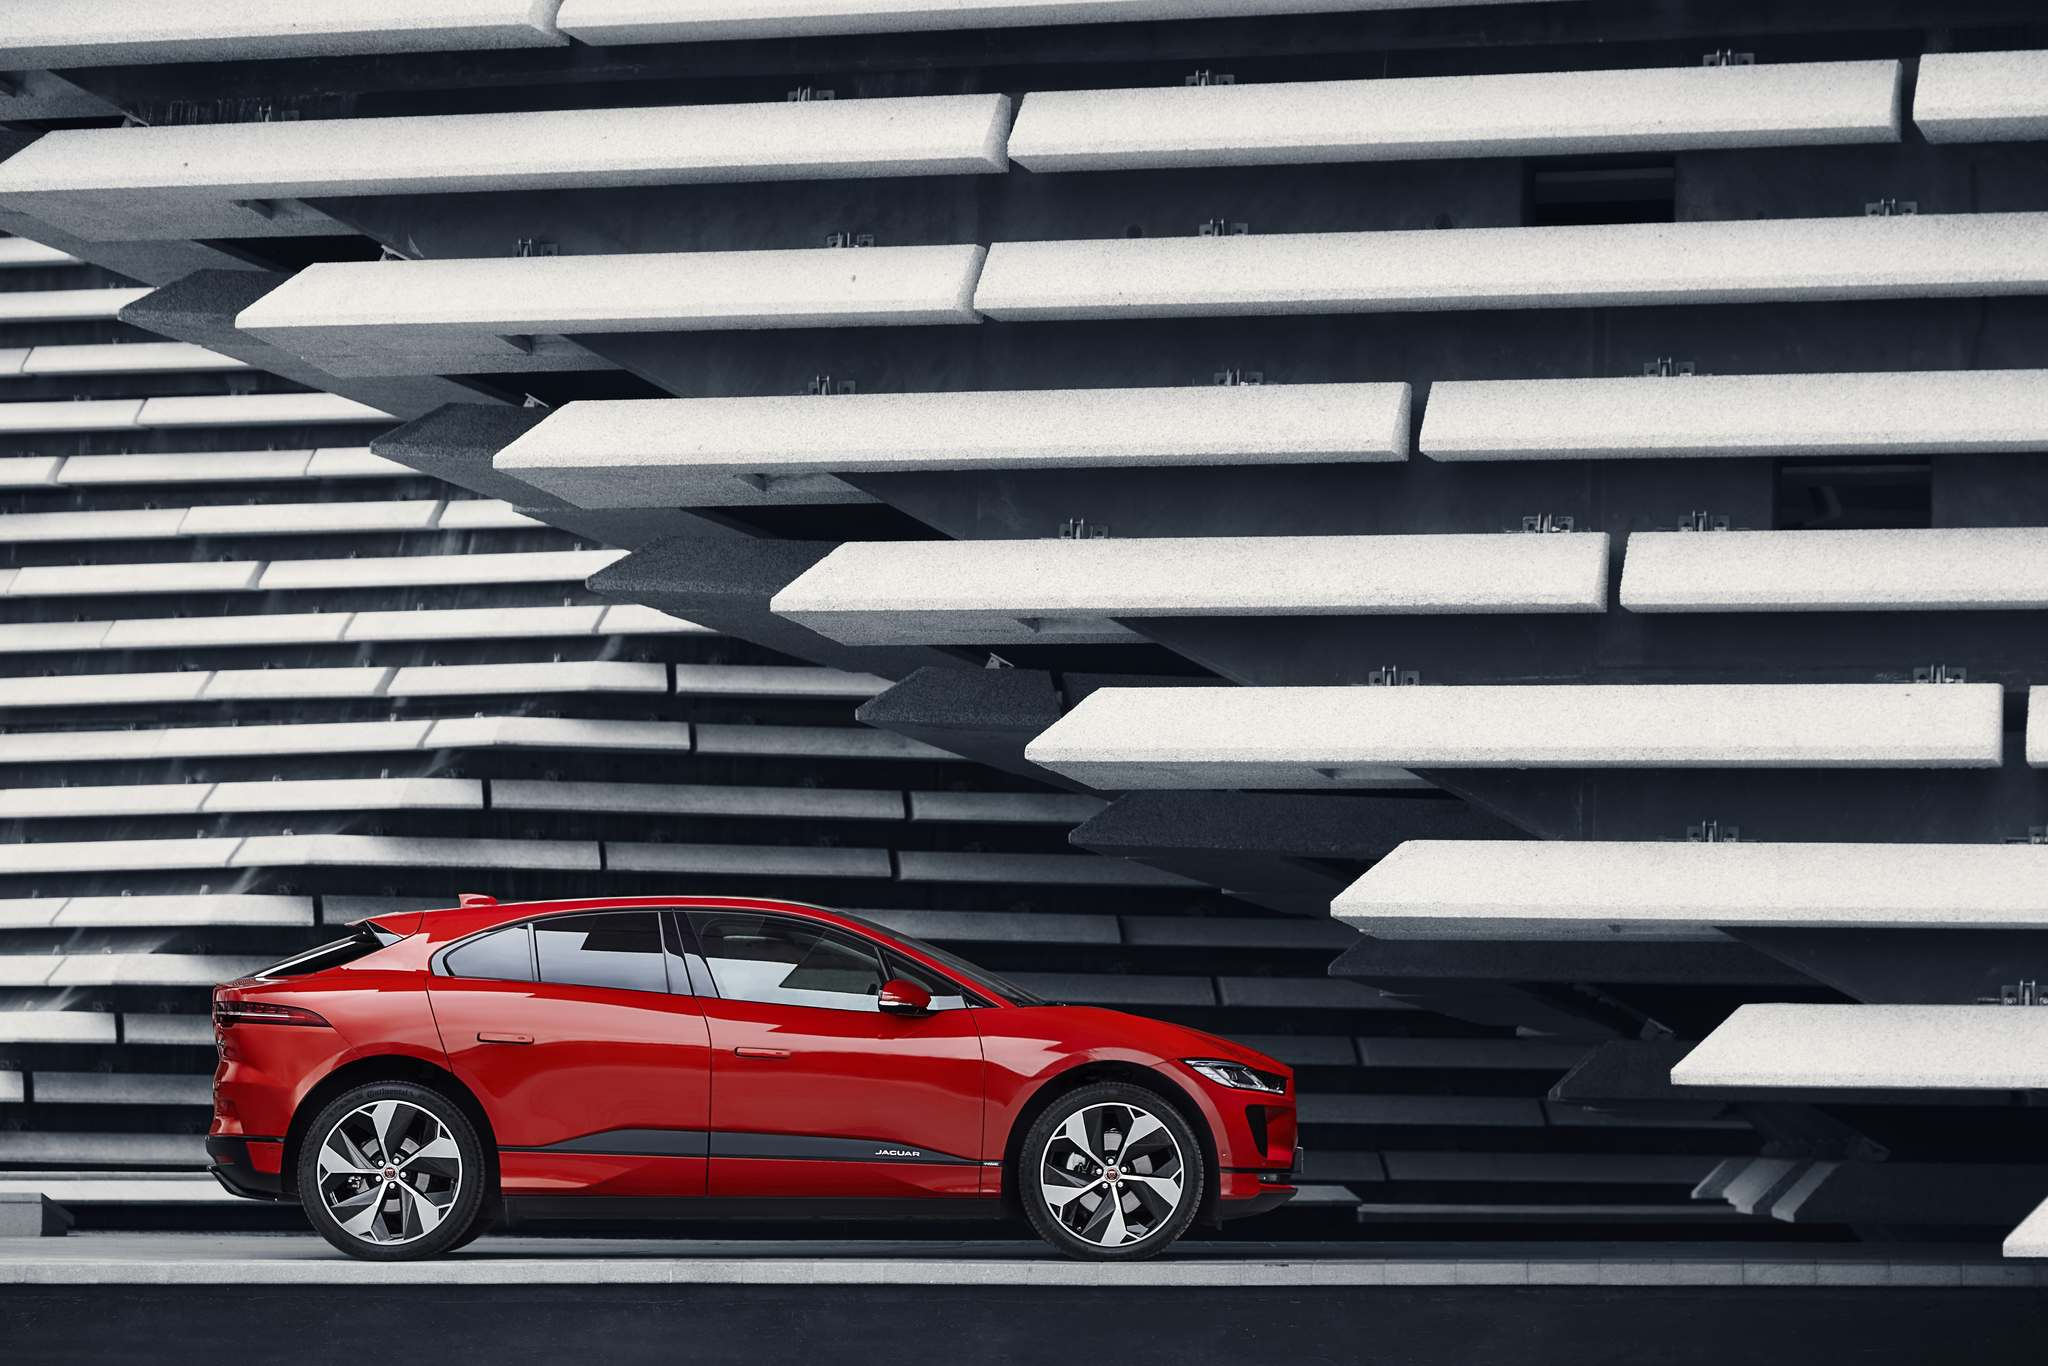 JaguarDerek Ranson, a new sales manager at Jaguar Land Rover Winnipeg, says the 2019 I-Pace shows that Jaguar remains on the cutting edge of technology.